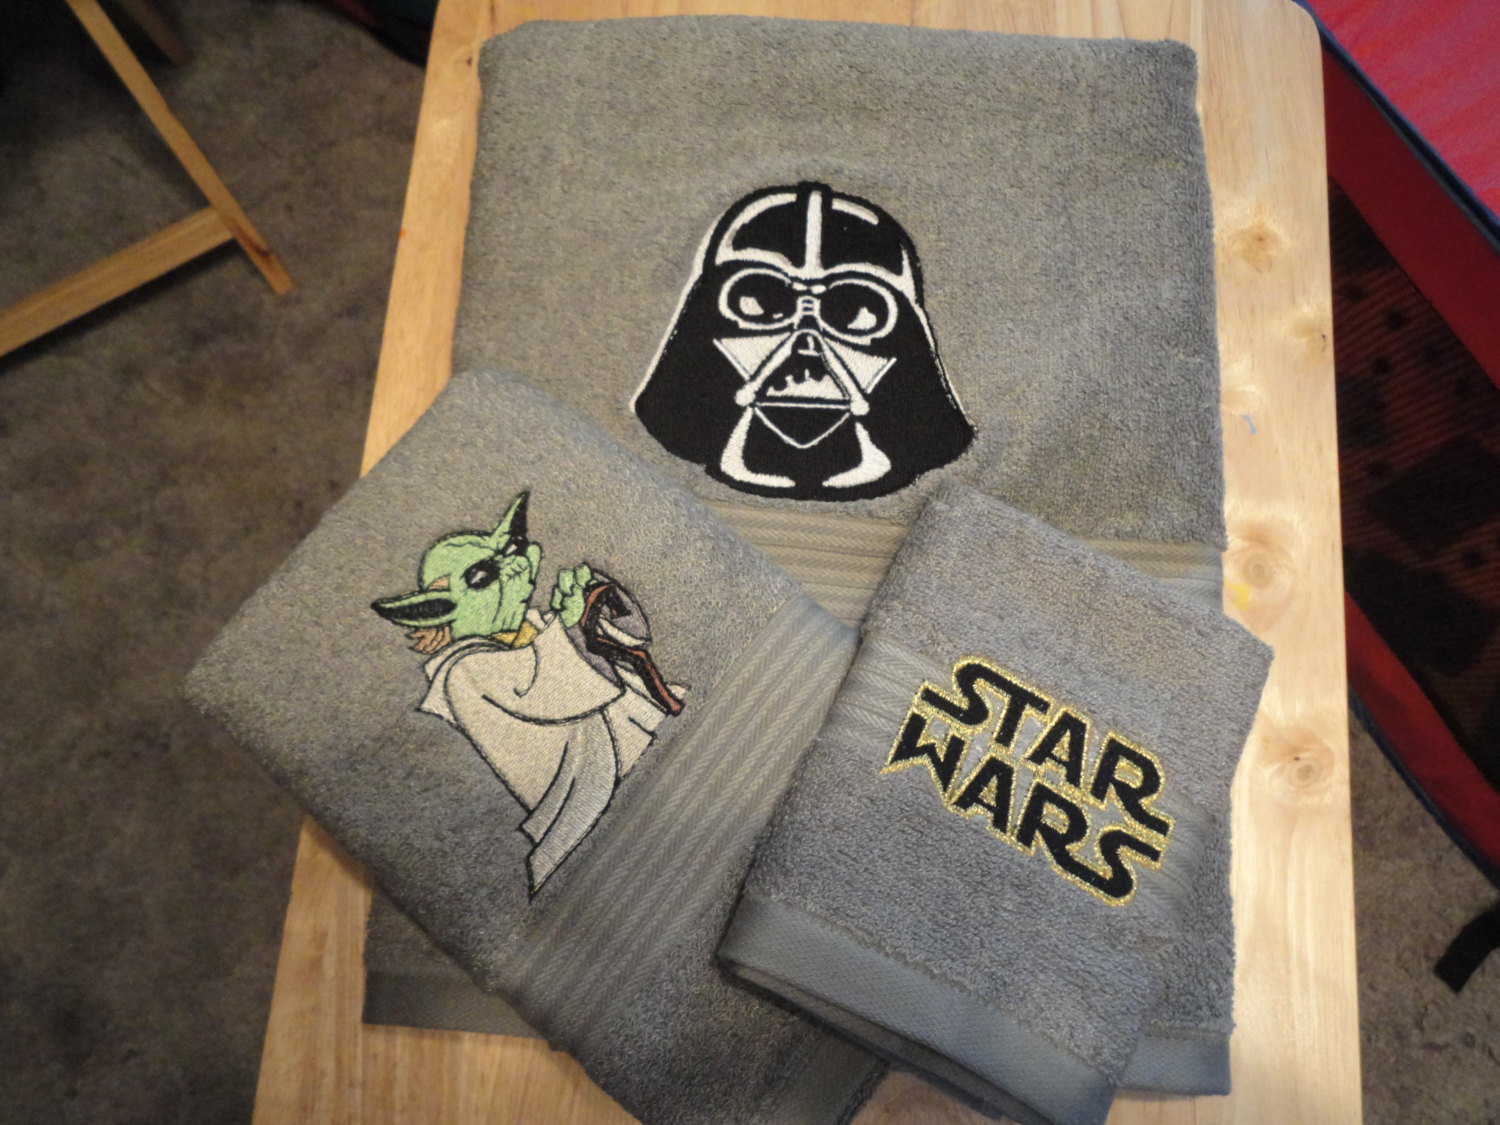 Darth Vader and Yoda embroidered on t-shirts